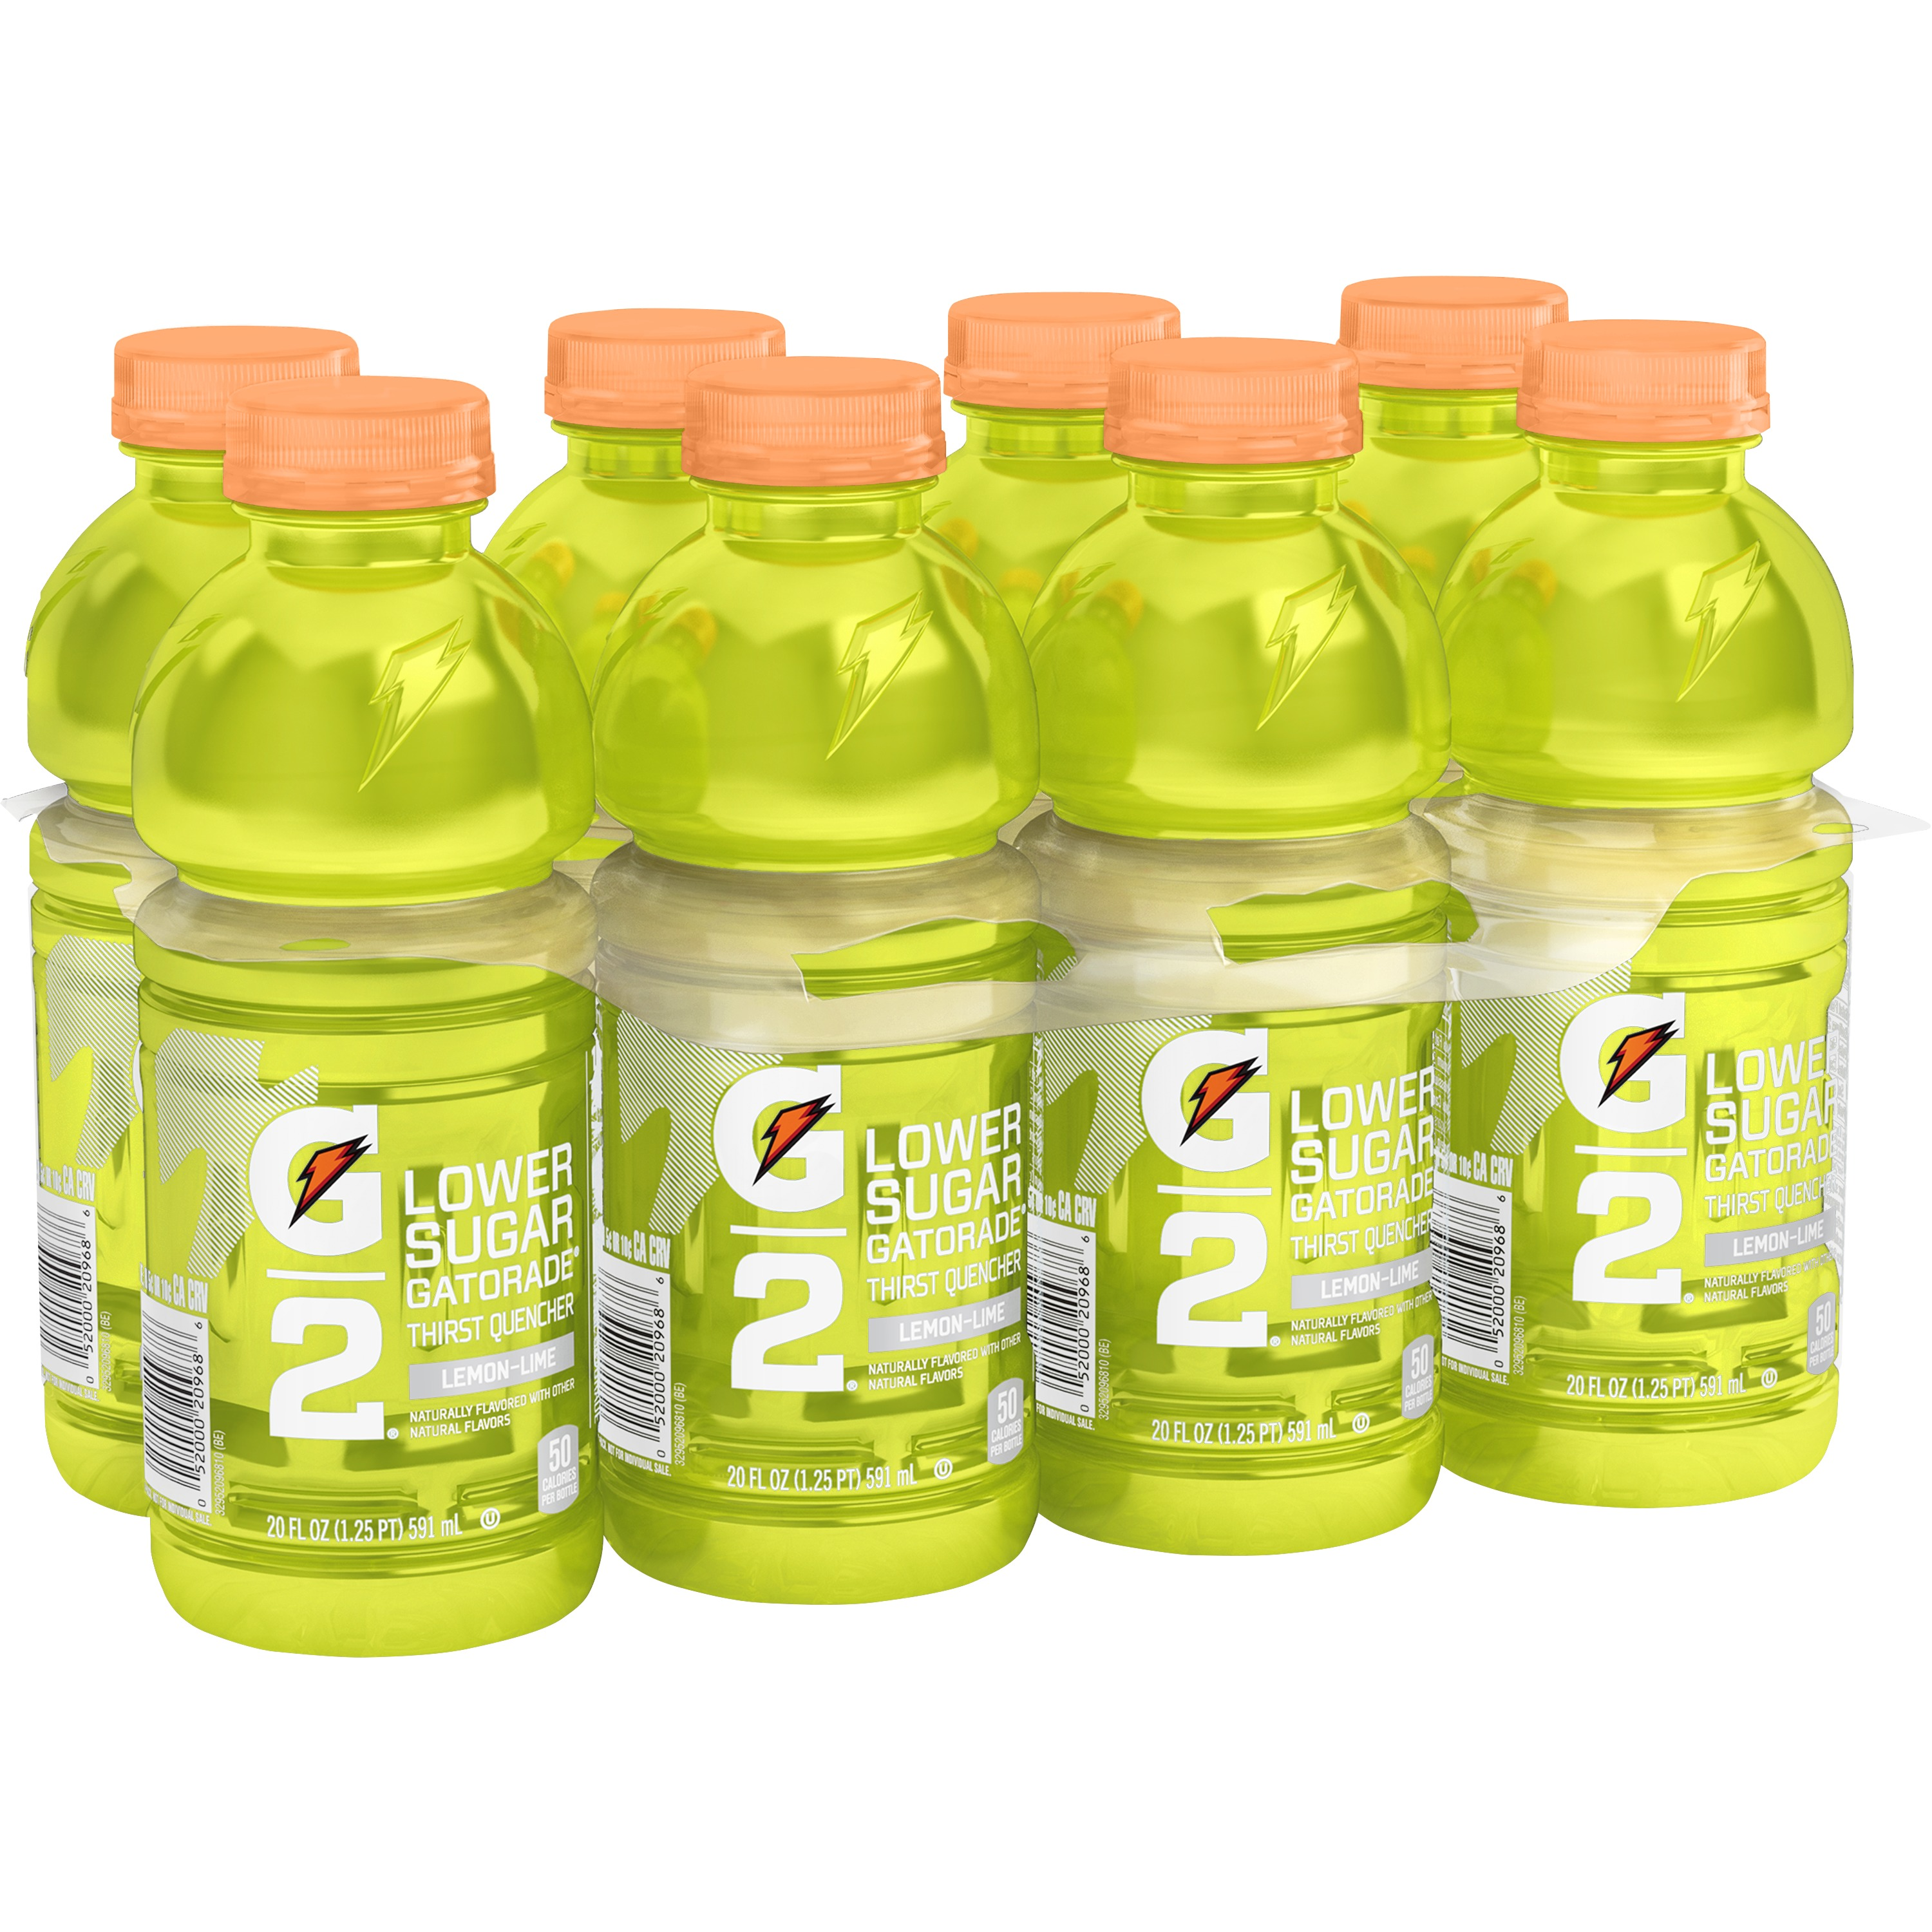 G2 Lower Sugar Gatorade Thirst Quencher Sports Drink, Lemon-Lime, 20 Fl Oz, 8 Count